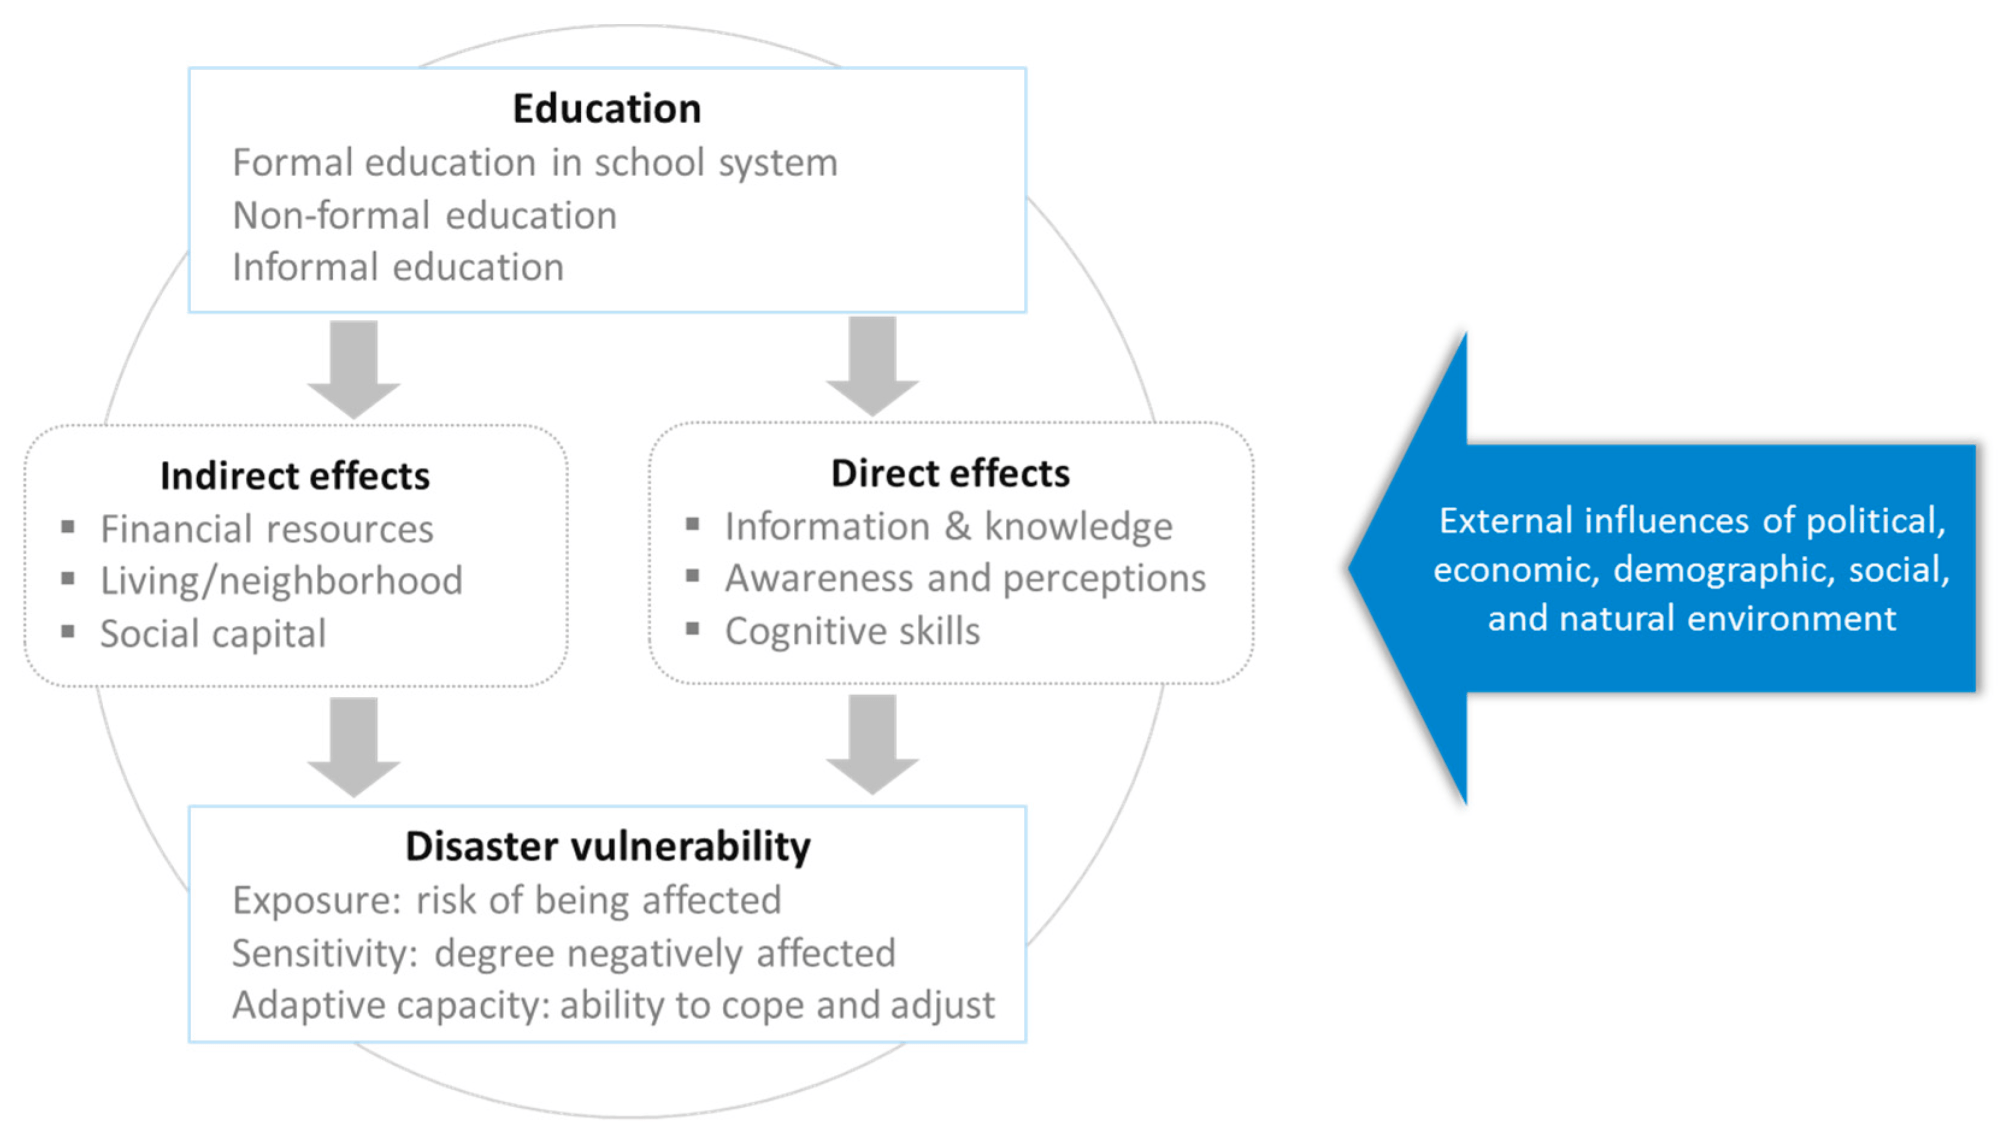 hight resolution of Sustainability   Free Full-Text   Education and Disaster Vulnerability in  Southeast Asia: Evidence and Policy Implications   HTML